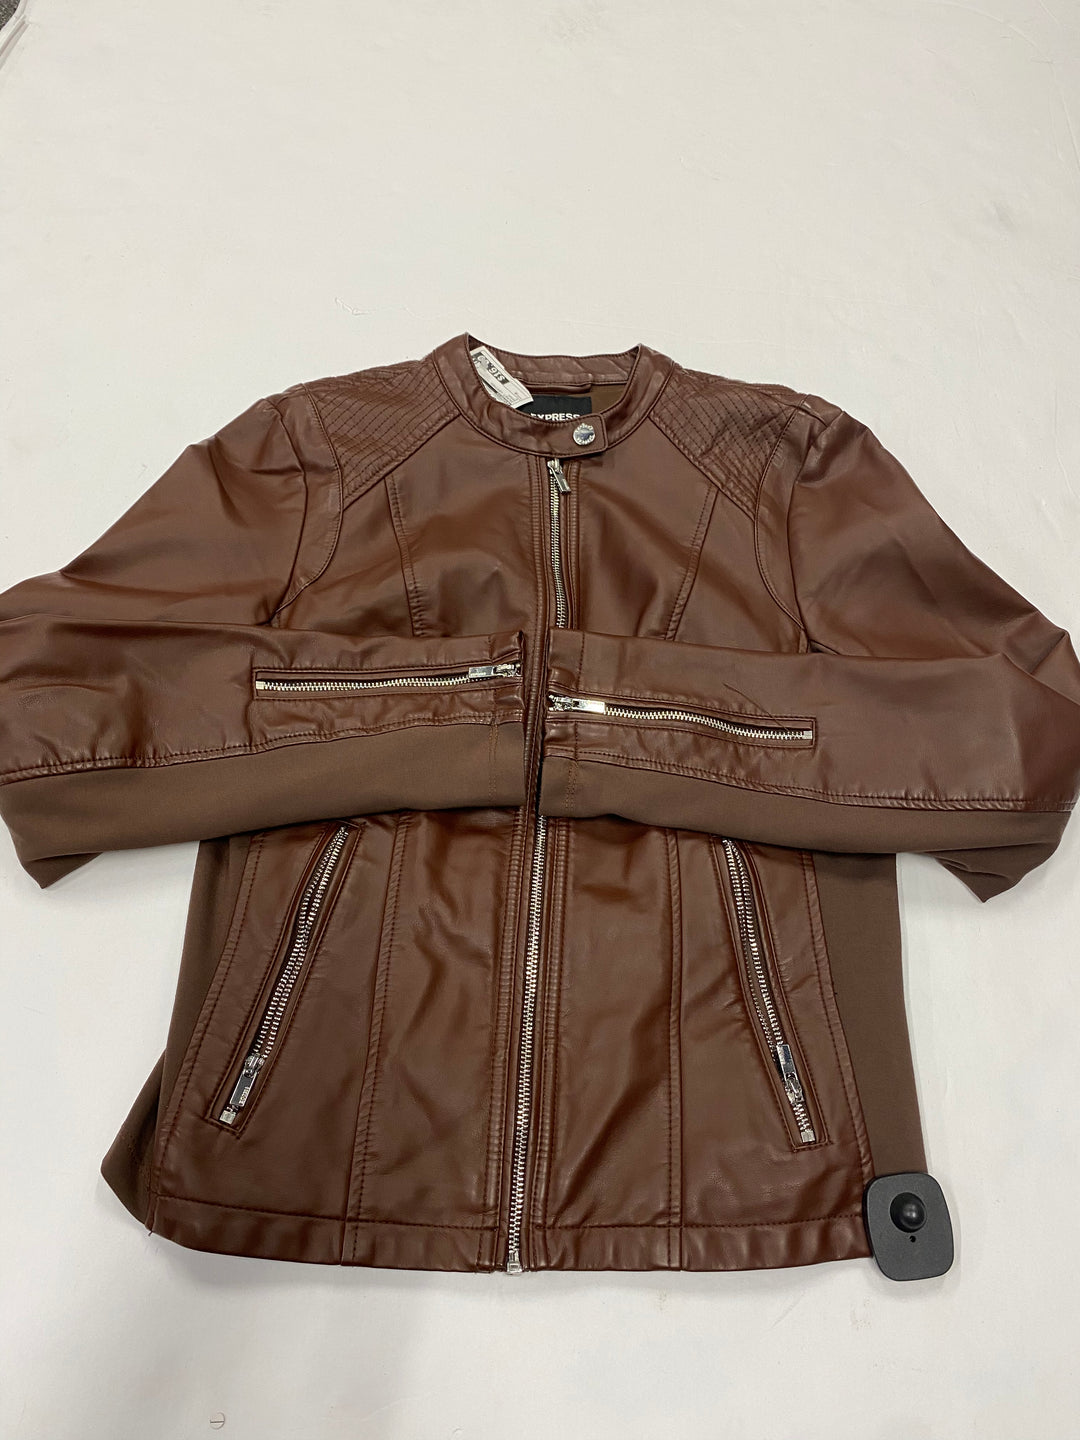 Primary Photo - BRAND: EXPRESS <BR>STYLE: JACKET LEATHER <BR>COLOR: BROWN <BR>SIZE: M <BR>SKU: 200-200202-4559